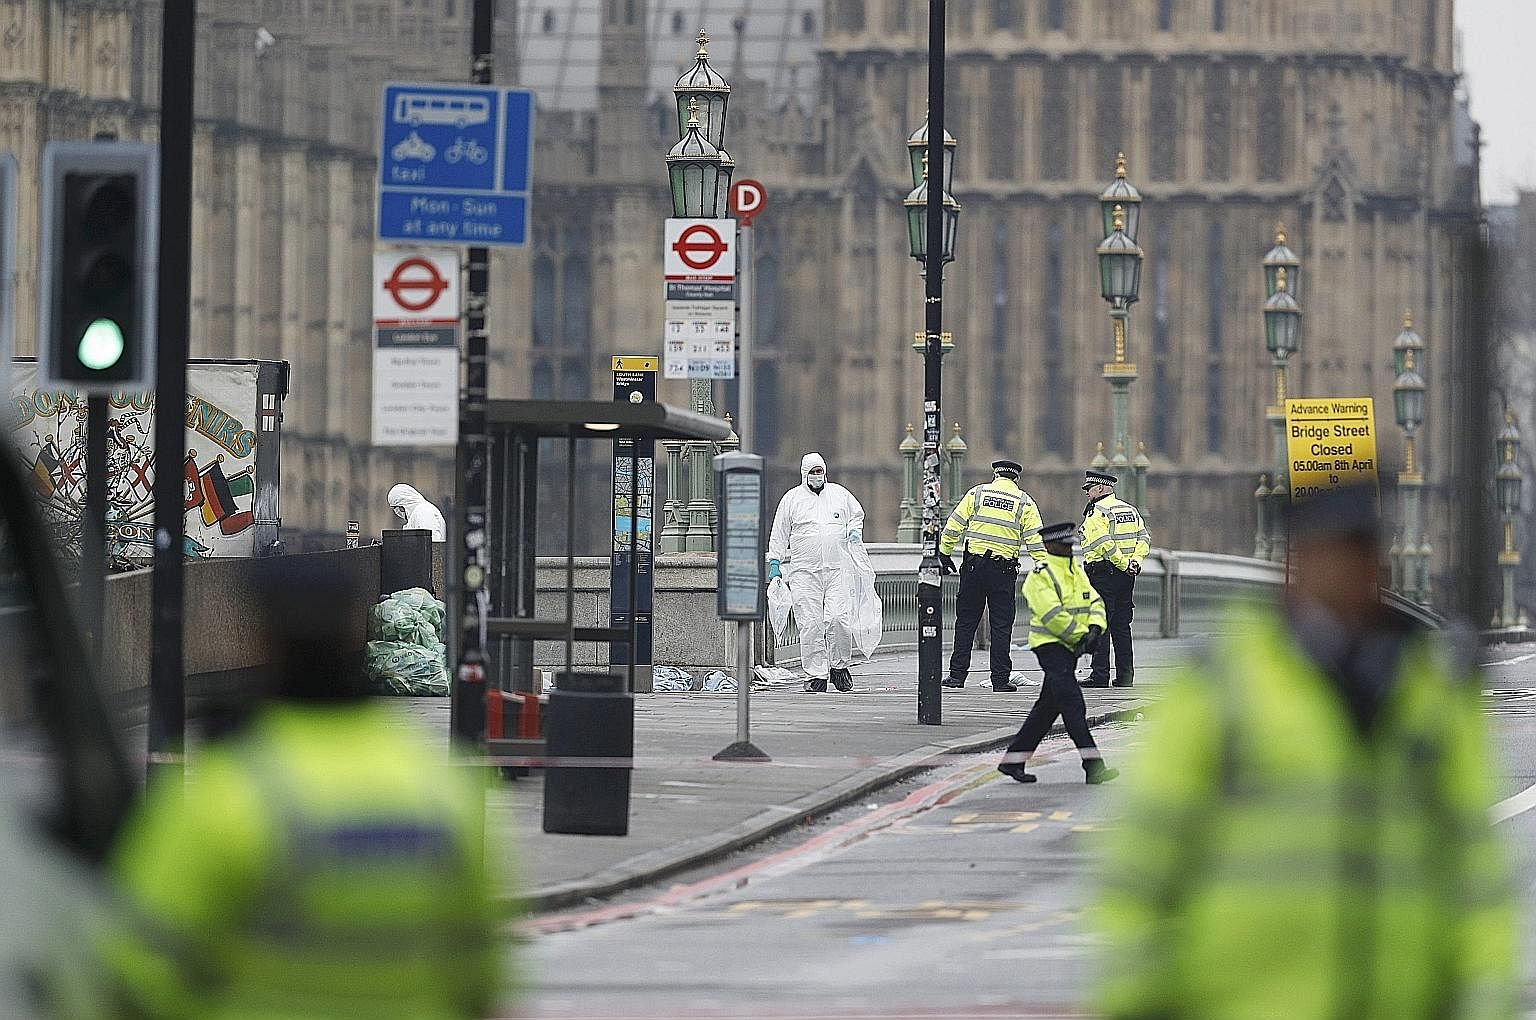 Police officers and forensics investigators working on Westminster Bridge yesterday after an attack by a man driving a car and wielding a knife left four people dead. A police officer entering a building in Birmingham, one of the properties raided af